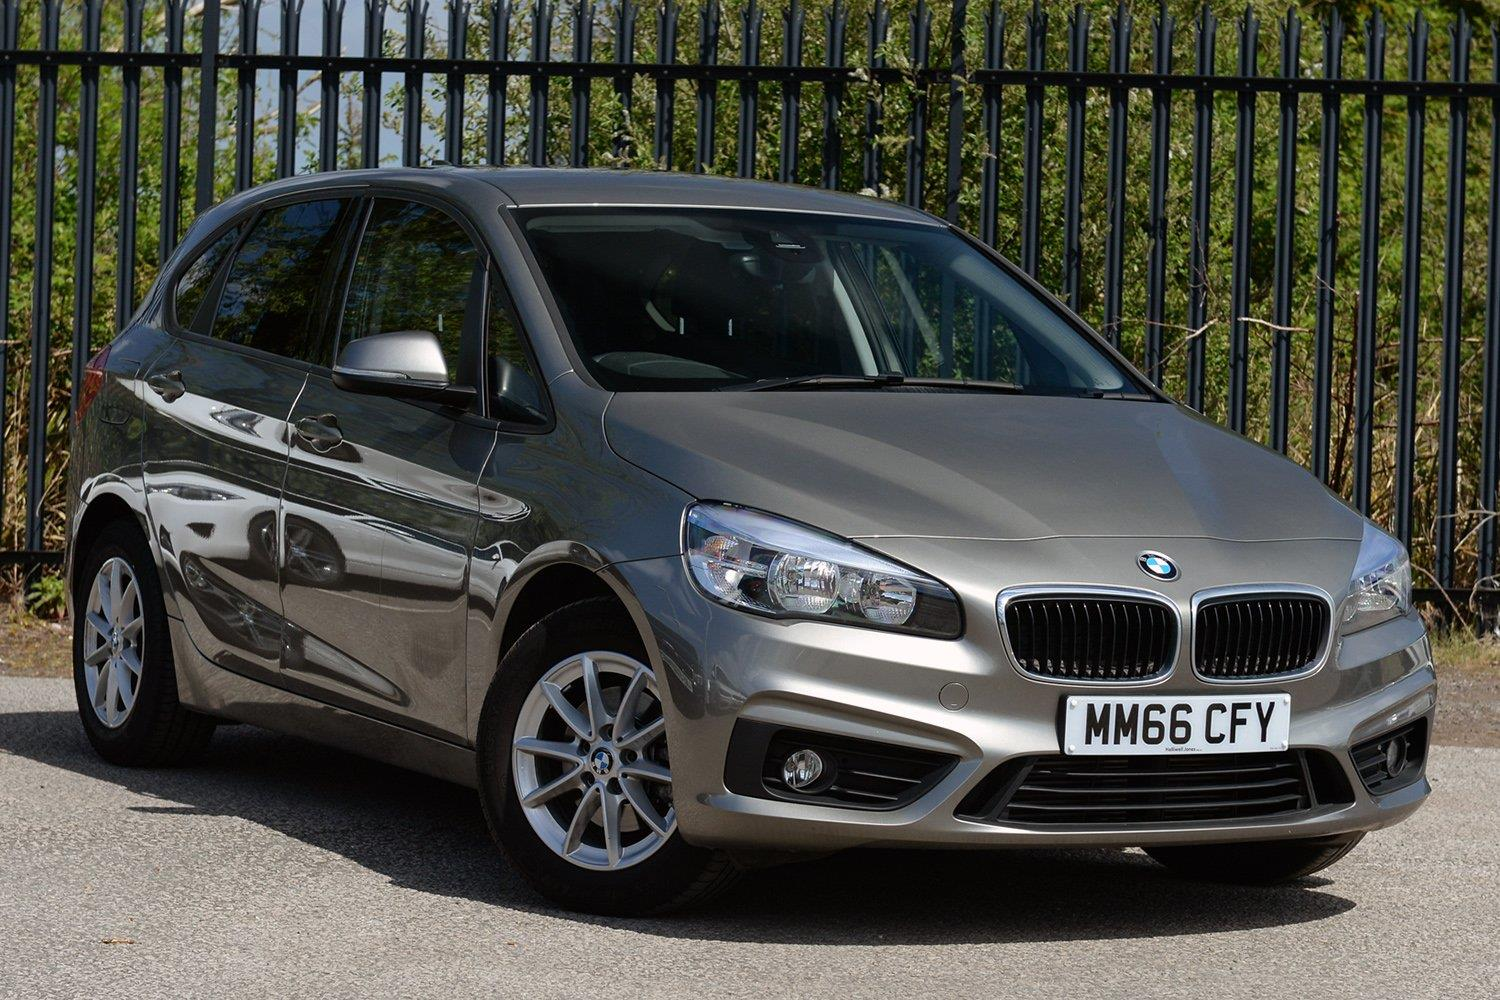 BMW 2 Series Active Tourer 5-Door MM66CFY - Image 7